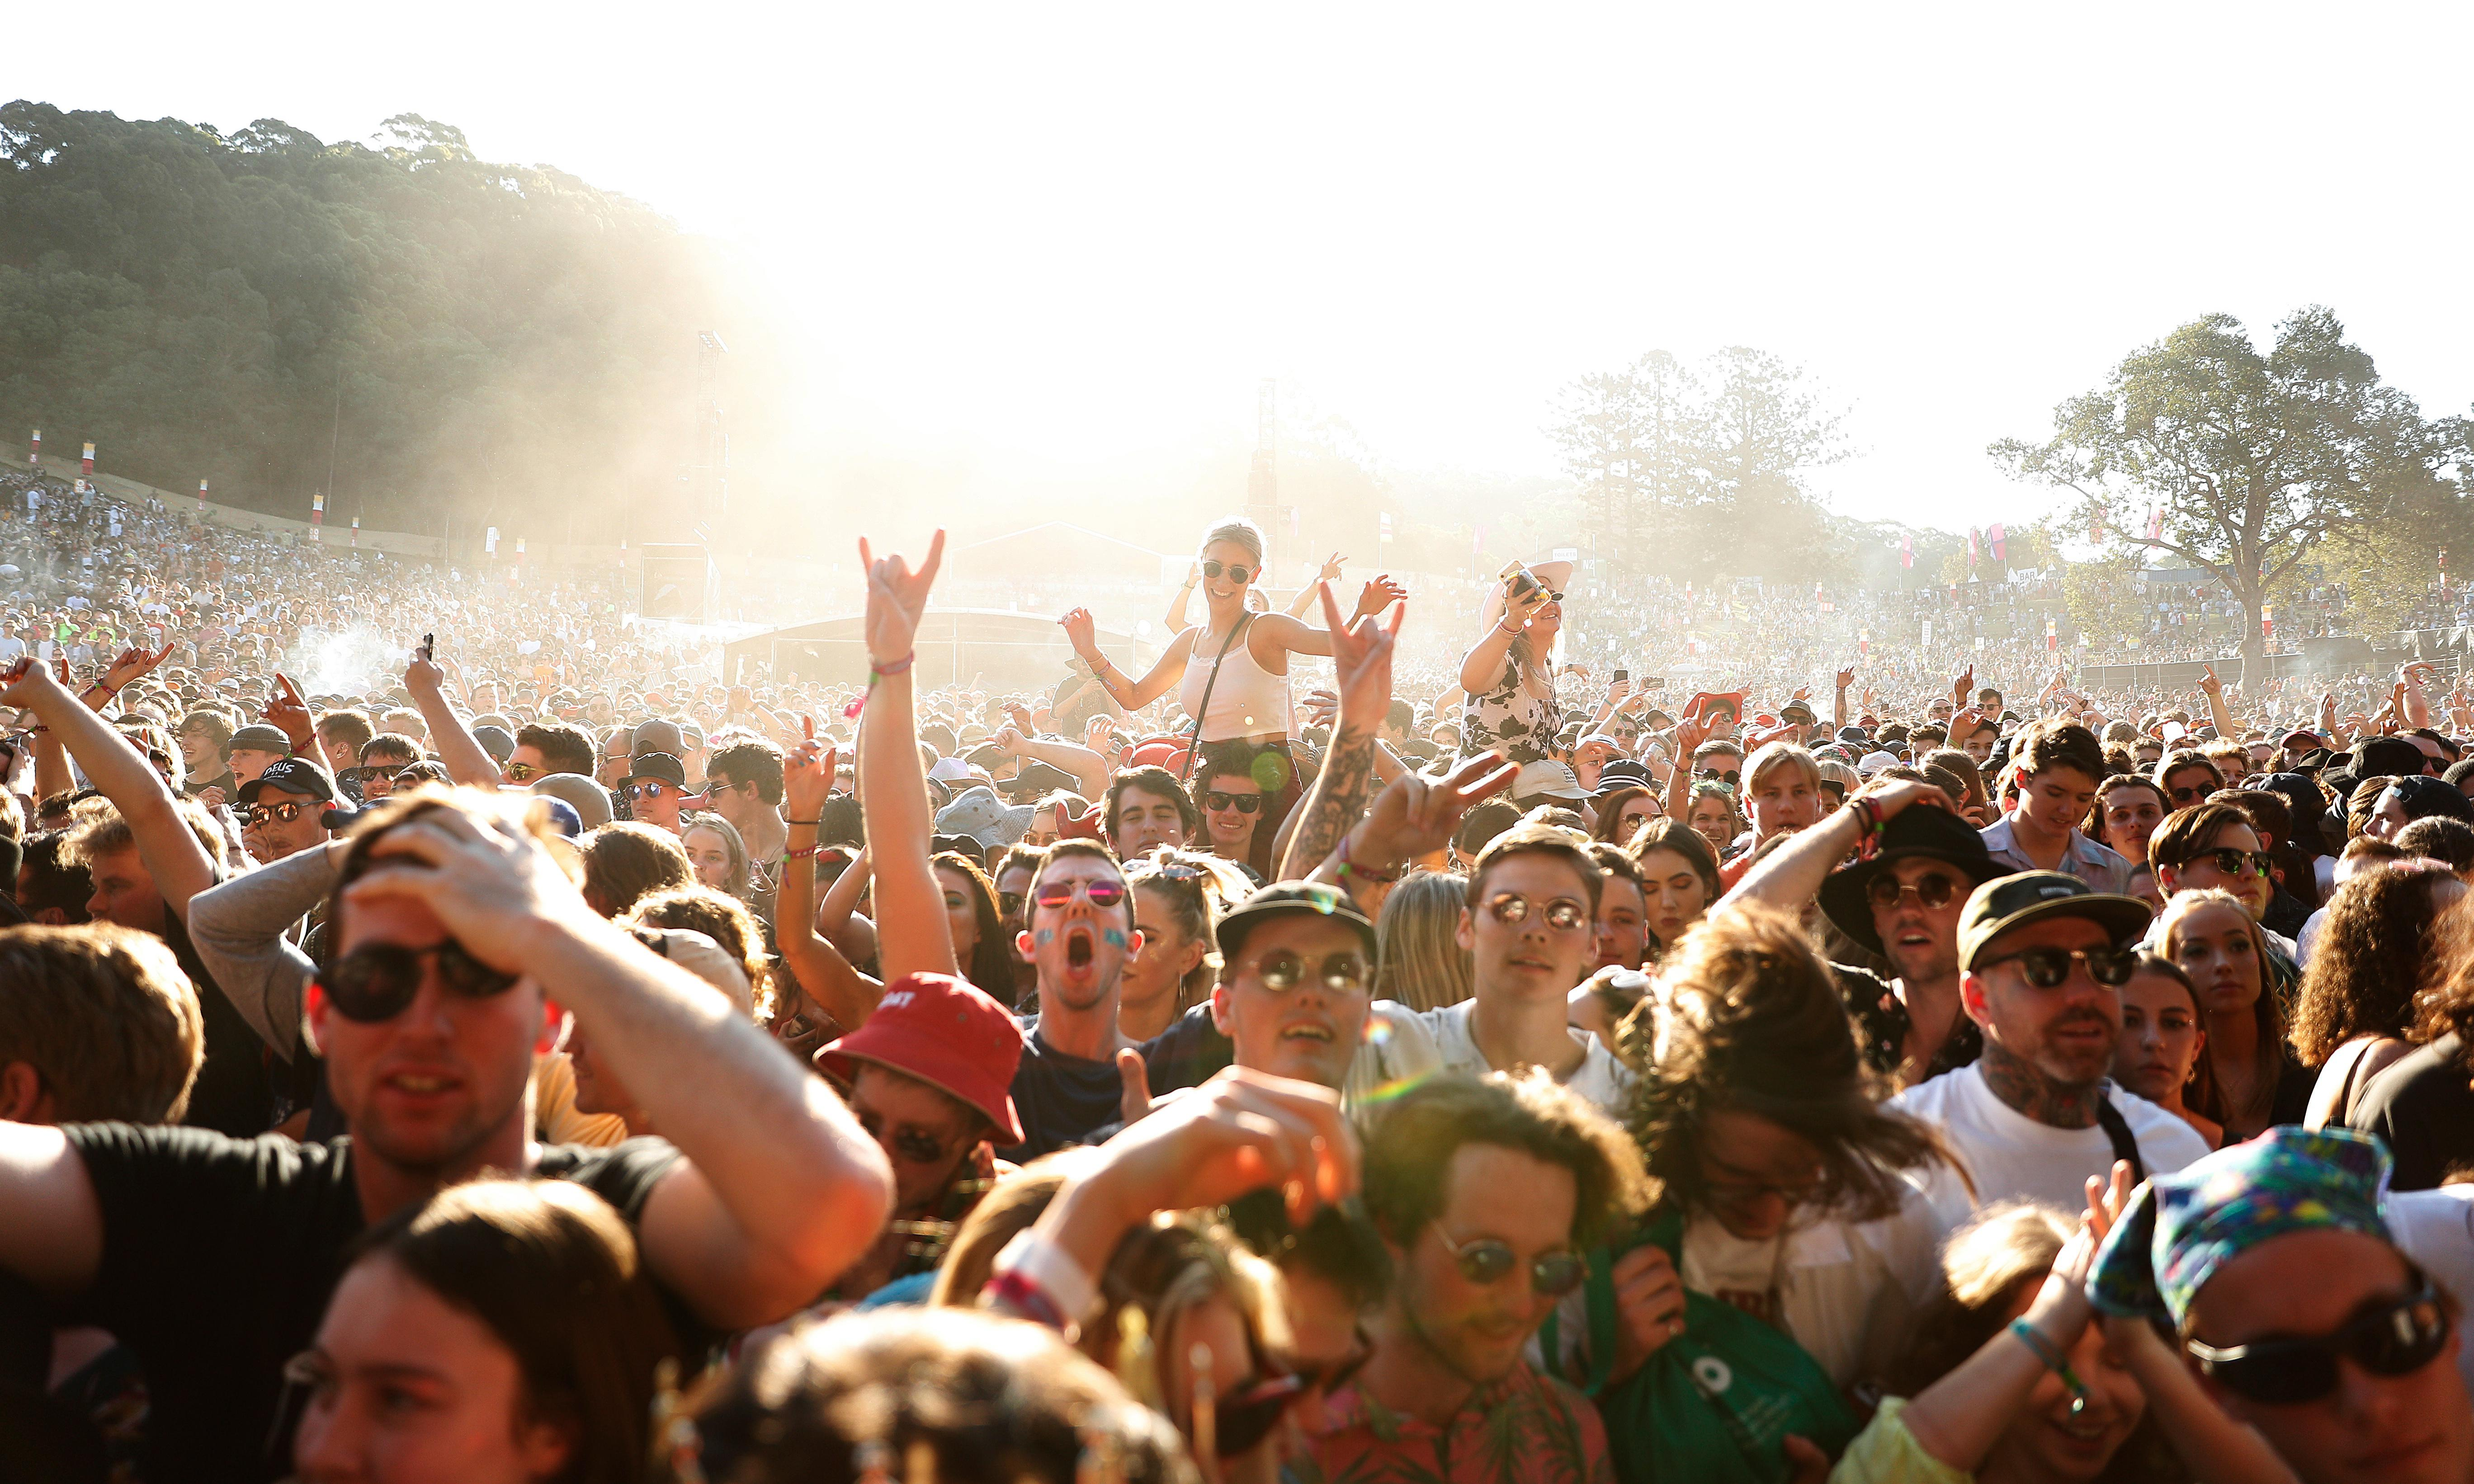 Police strip searched 16-year-old girl at Splendour music festival, inquiry hears